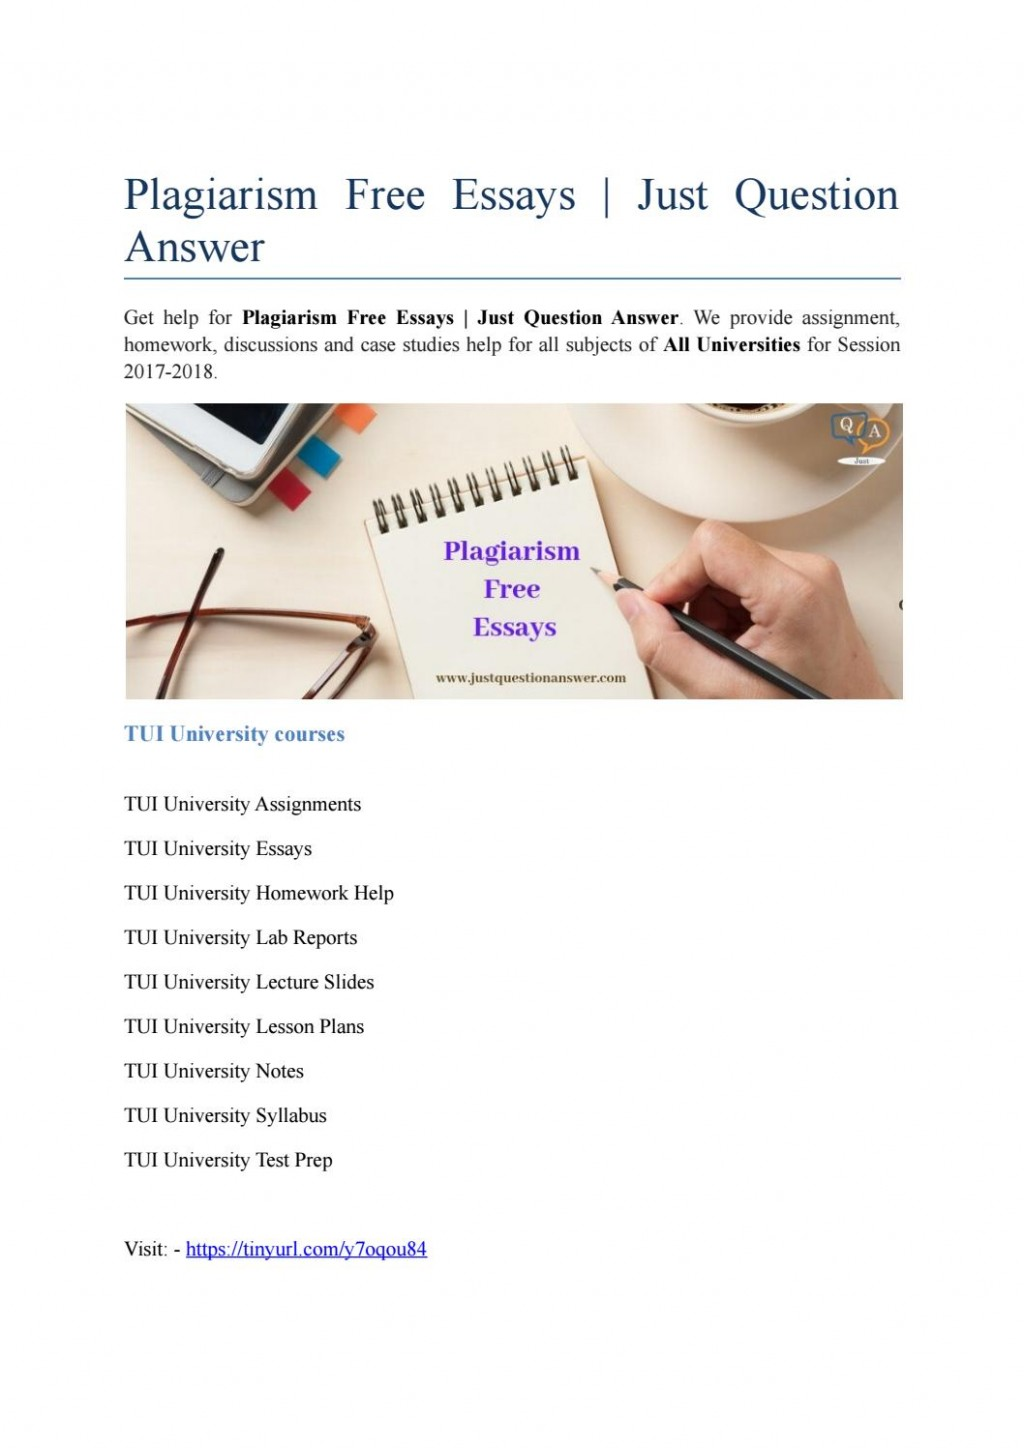 009 Essay Example Page 1 Plagiarism Free Impressive Essays 100 Check Large